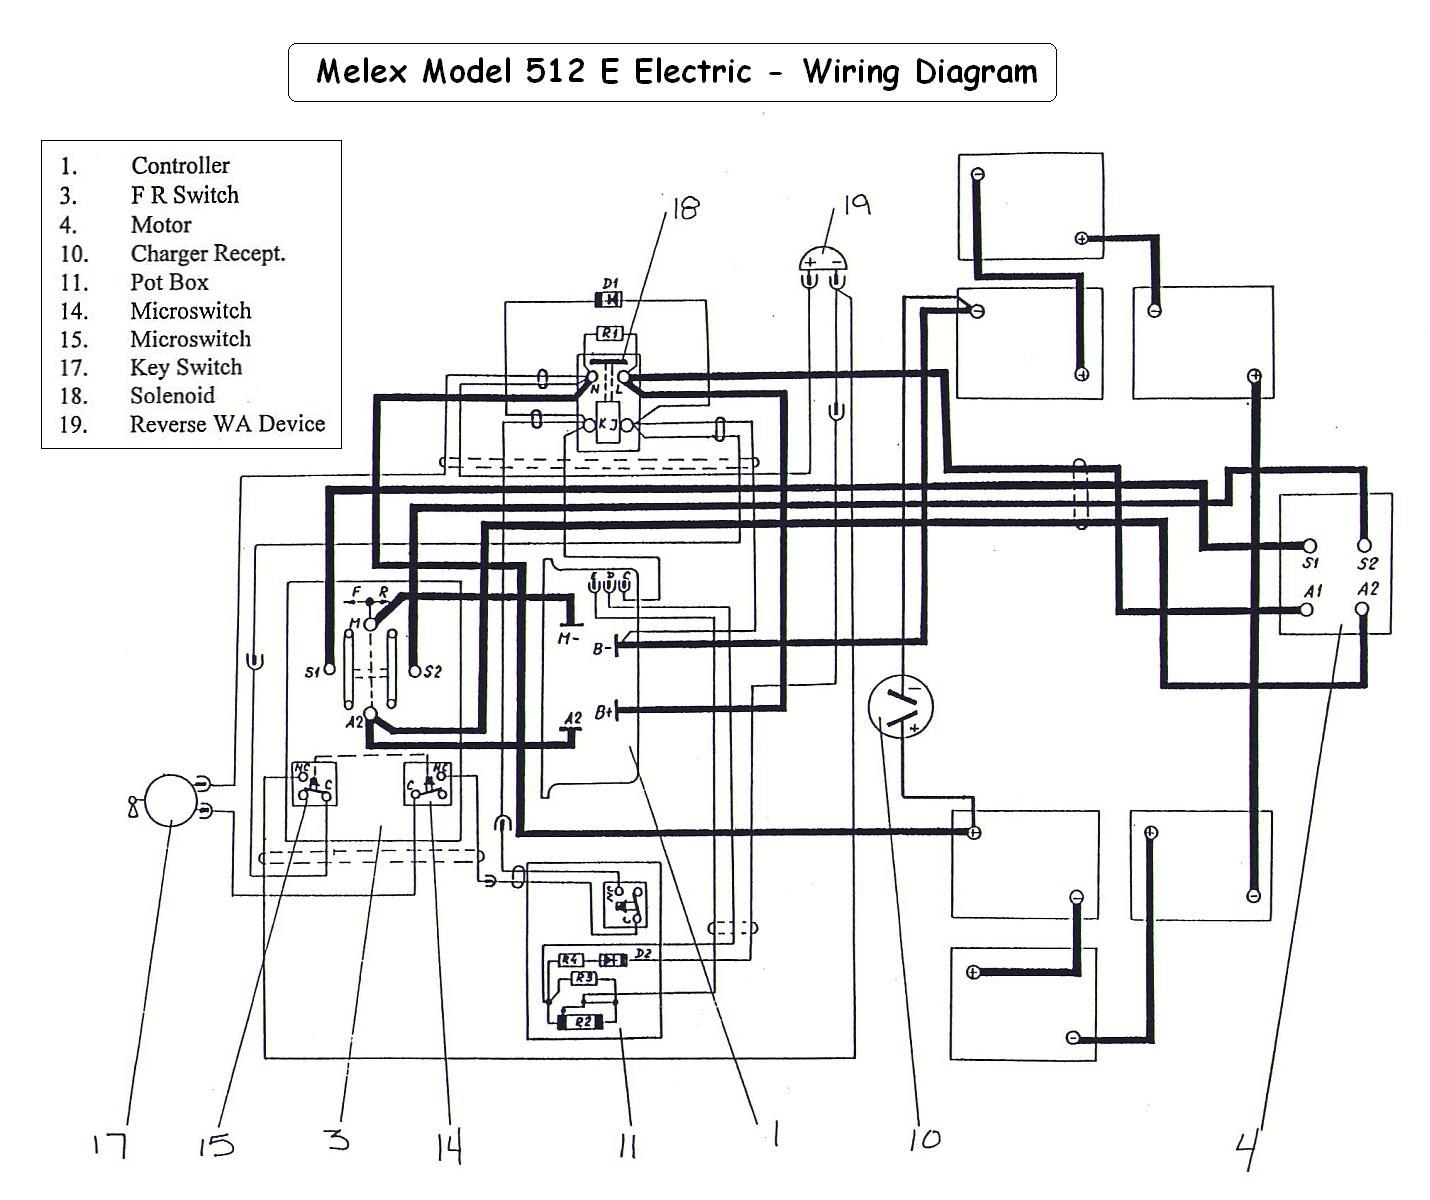 Melex512E_wiring_diagram vintagegolfcartparts com westinghouse golf cart wiring diagram at aneh.co